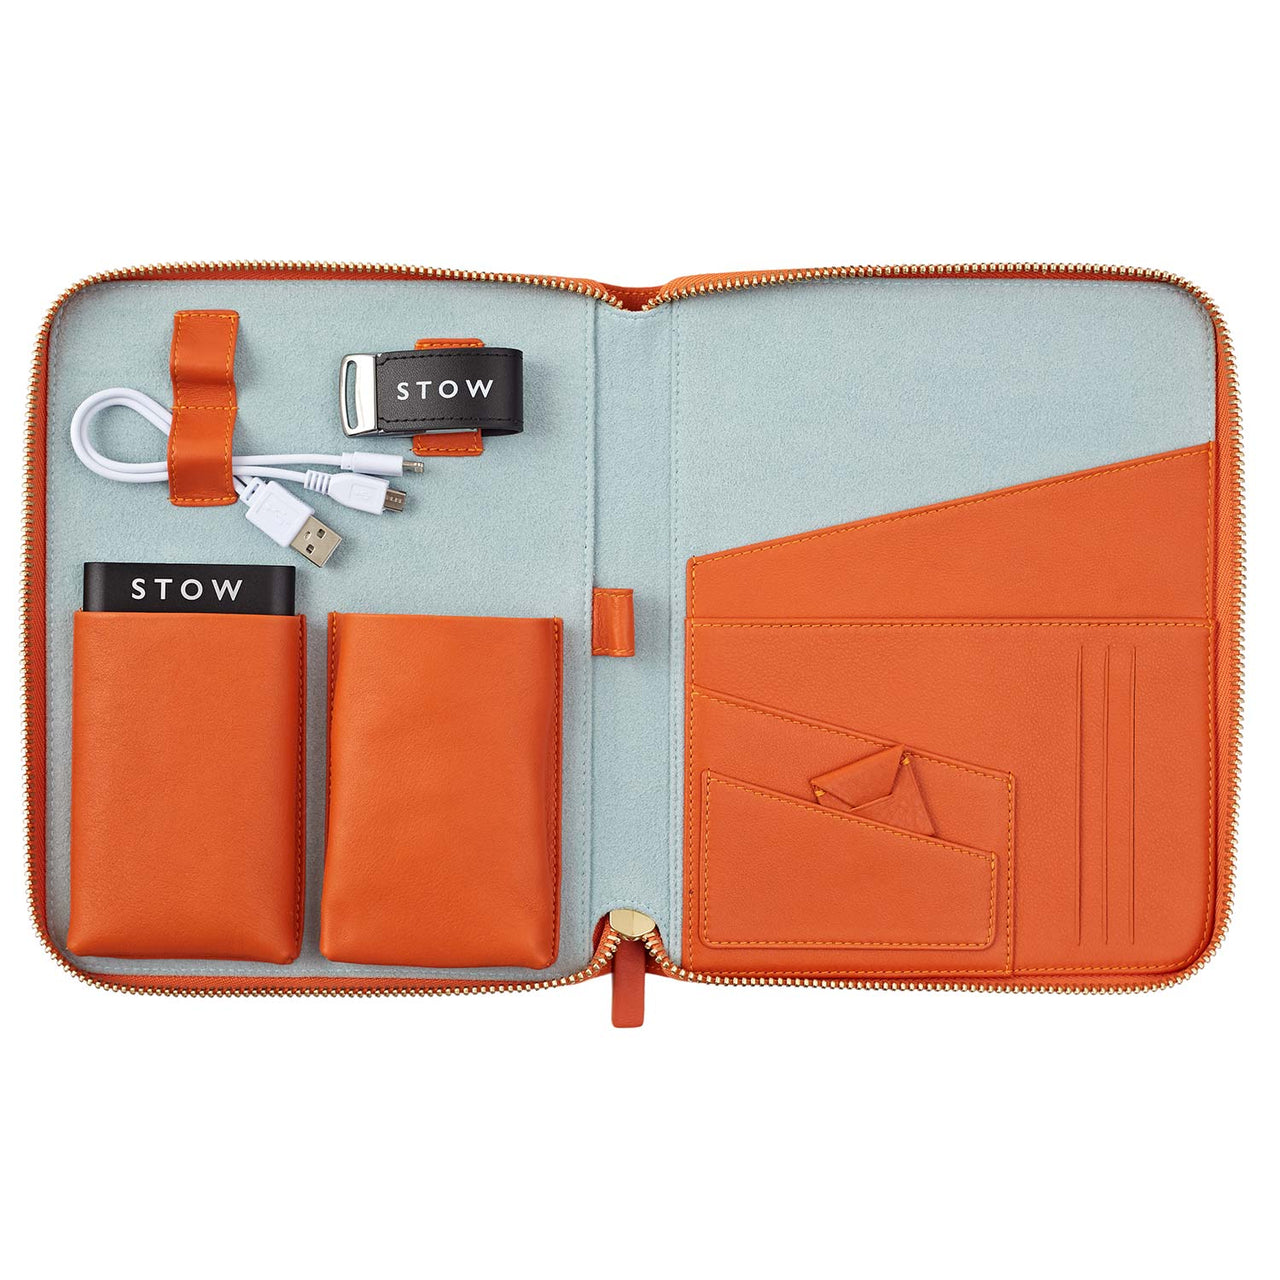 STOW Tech Cases Amber Orange & Dusty Aqua / Gold Powerbank & White USB First Class Leather Tech Case